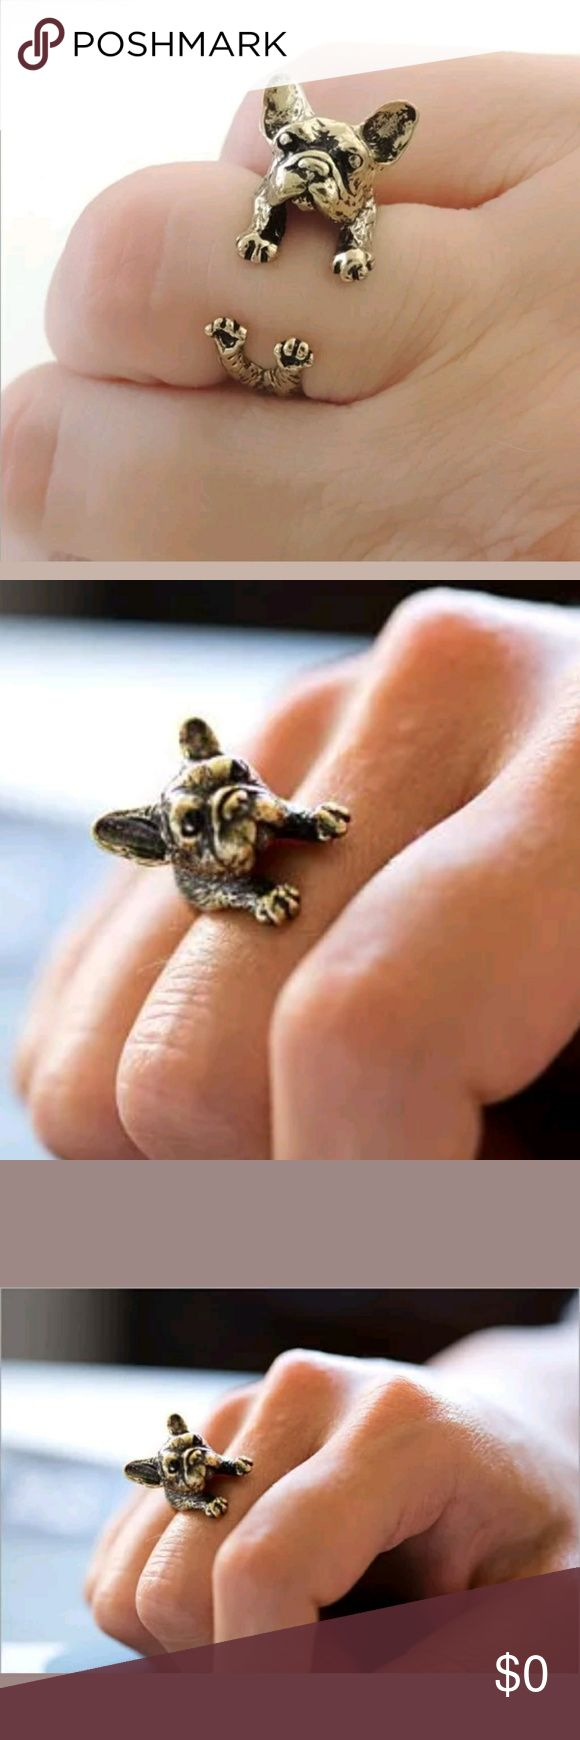 New. Bull Terrier dog ring Vintage adjustable New Vintage  Bull Terrier  dog ring adjustable Silvet plated Jewelry Rings